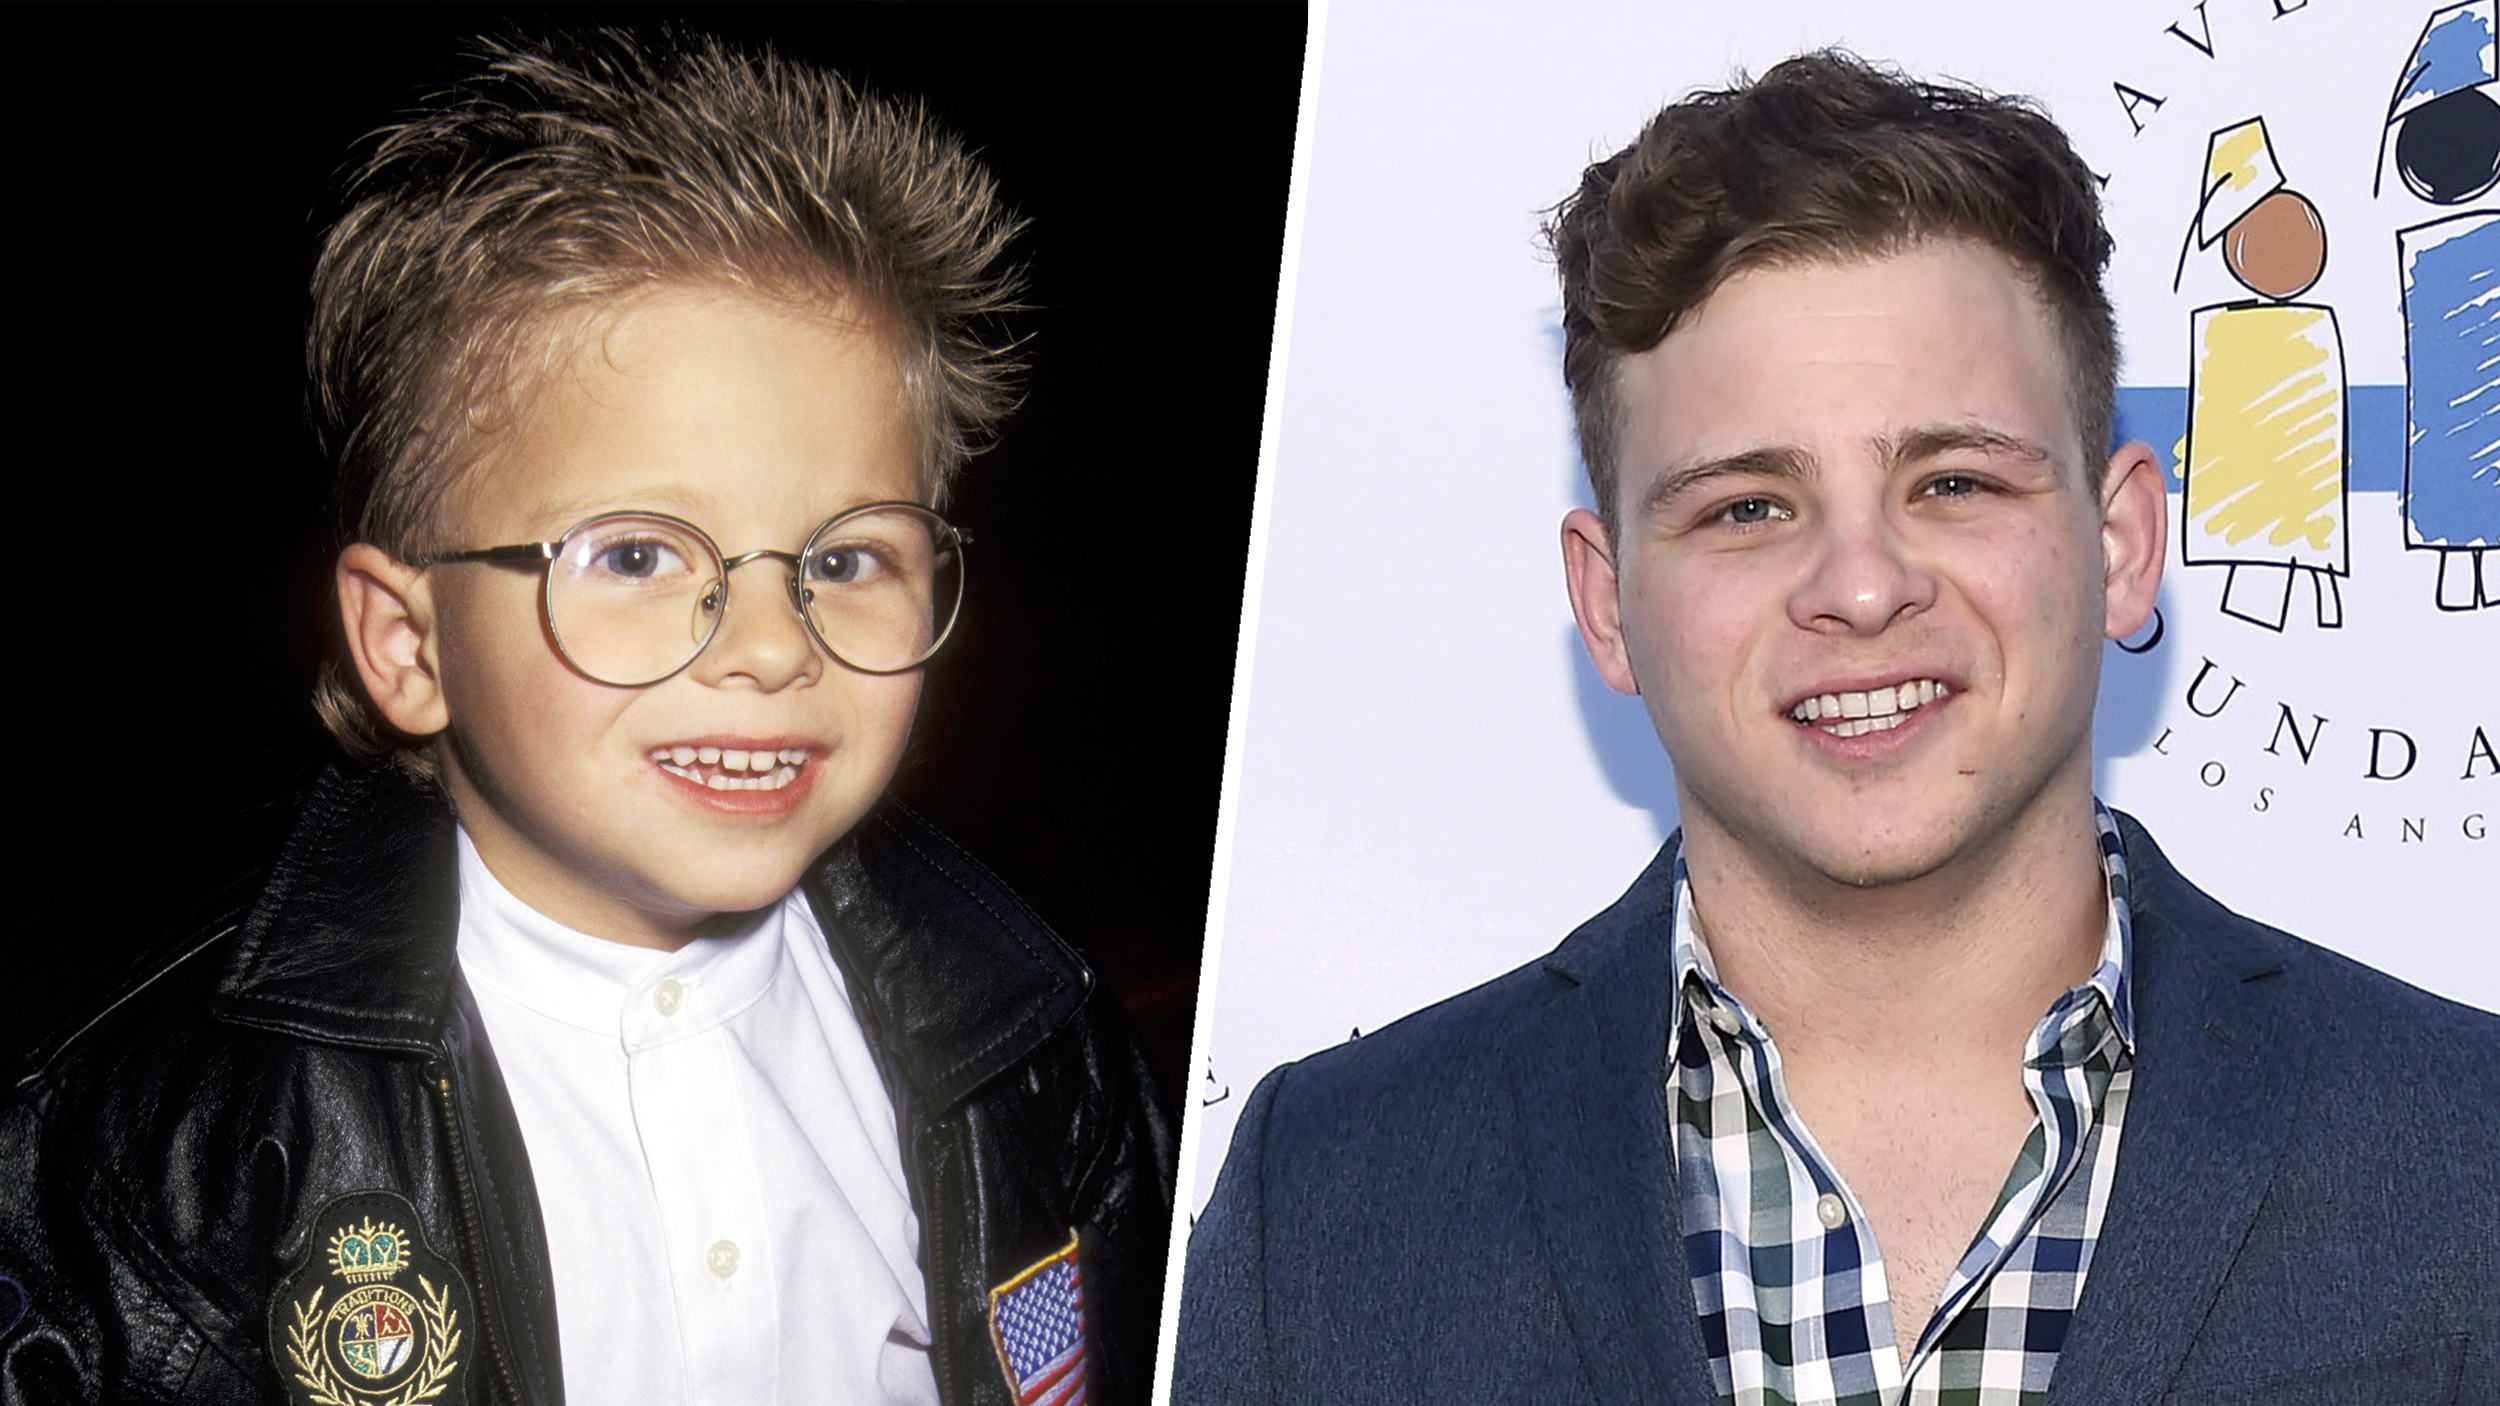 Jonathan Lipnicki The Adorable Boy From Jerry Maguire Speaks About Years Of Anxiety Bullying